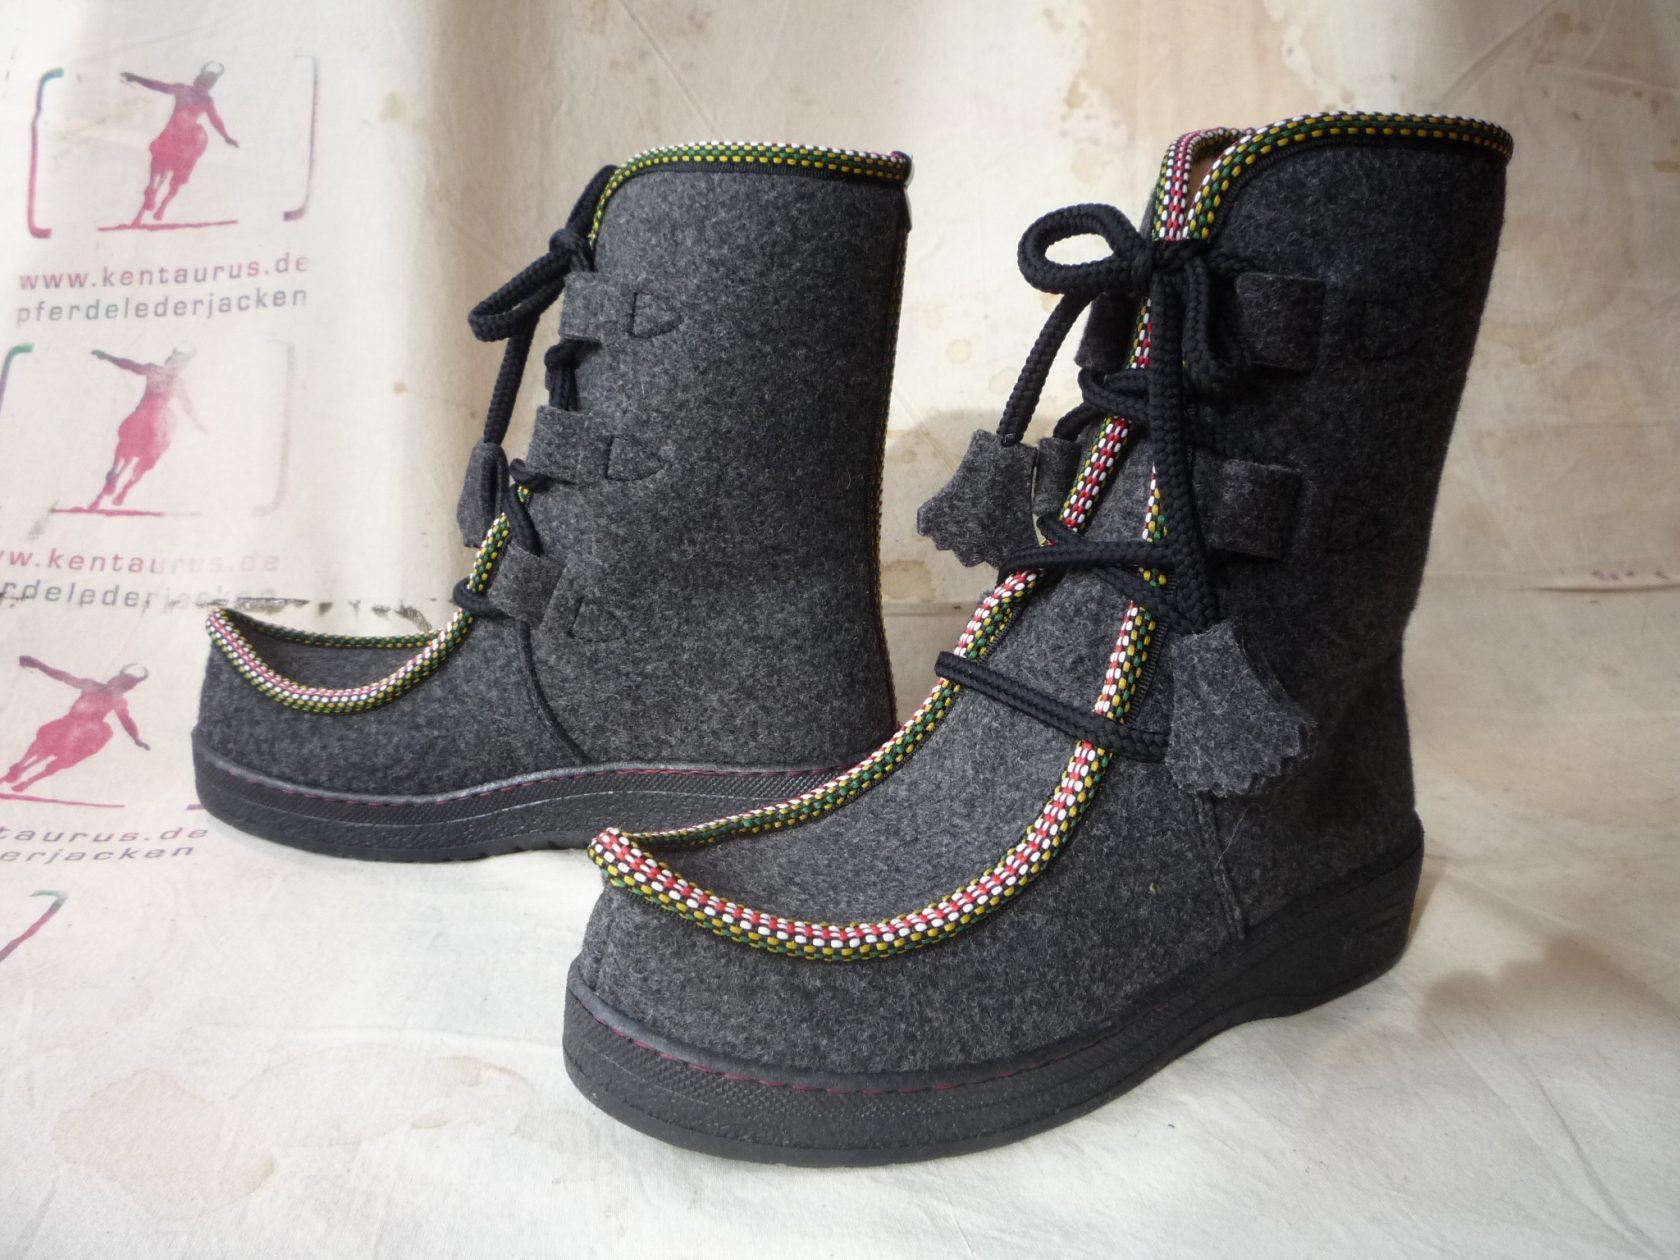 Penelope Chilvers` Impossible Boot